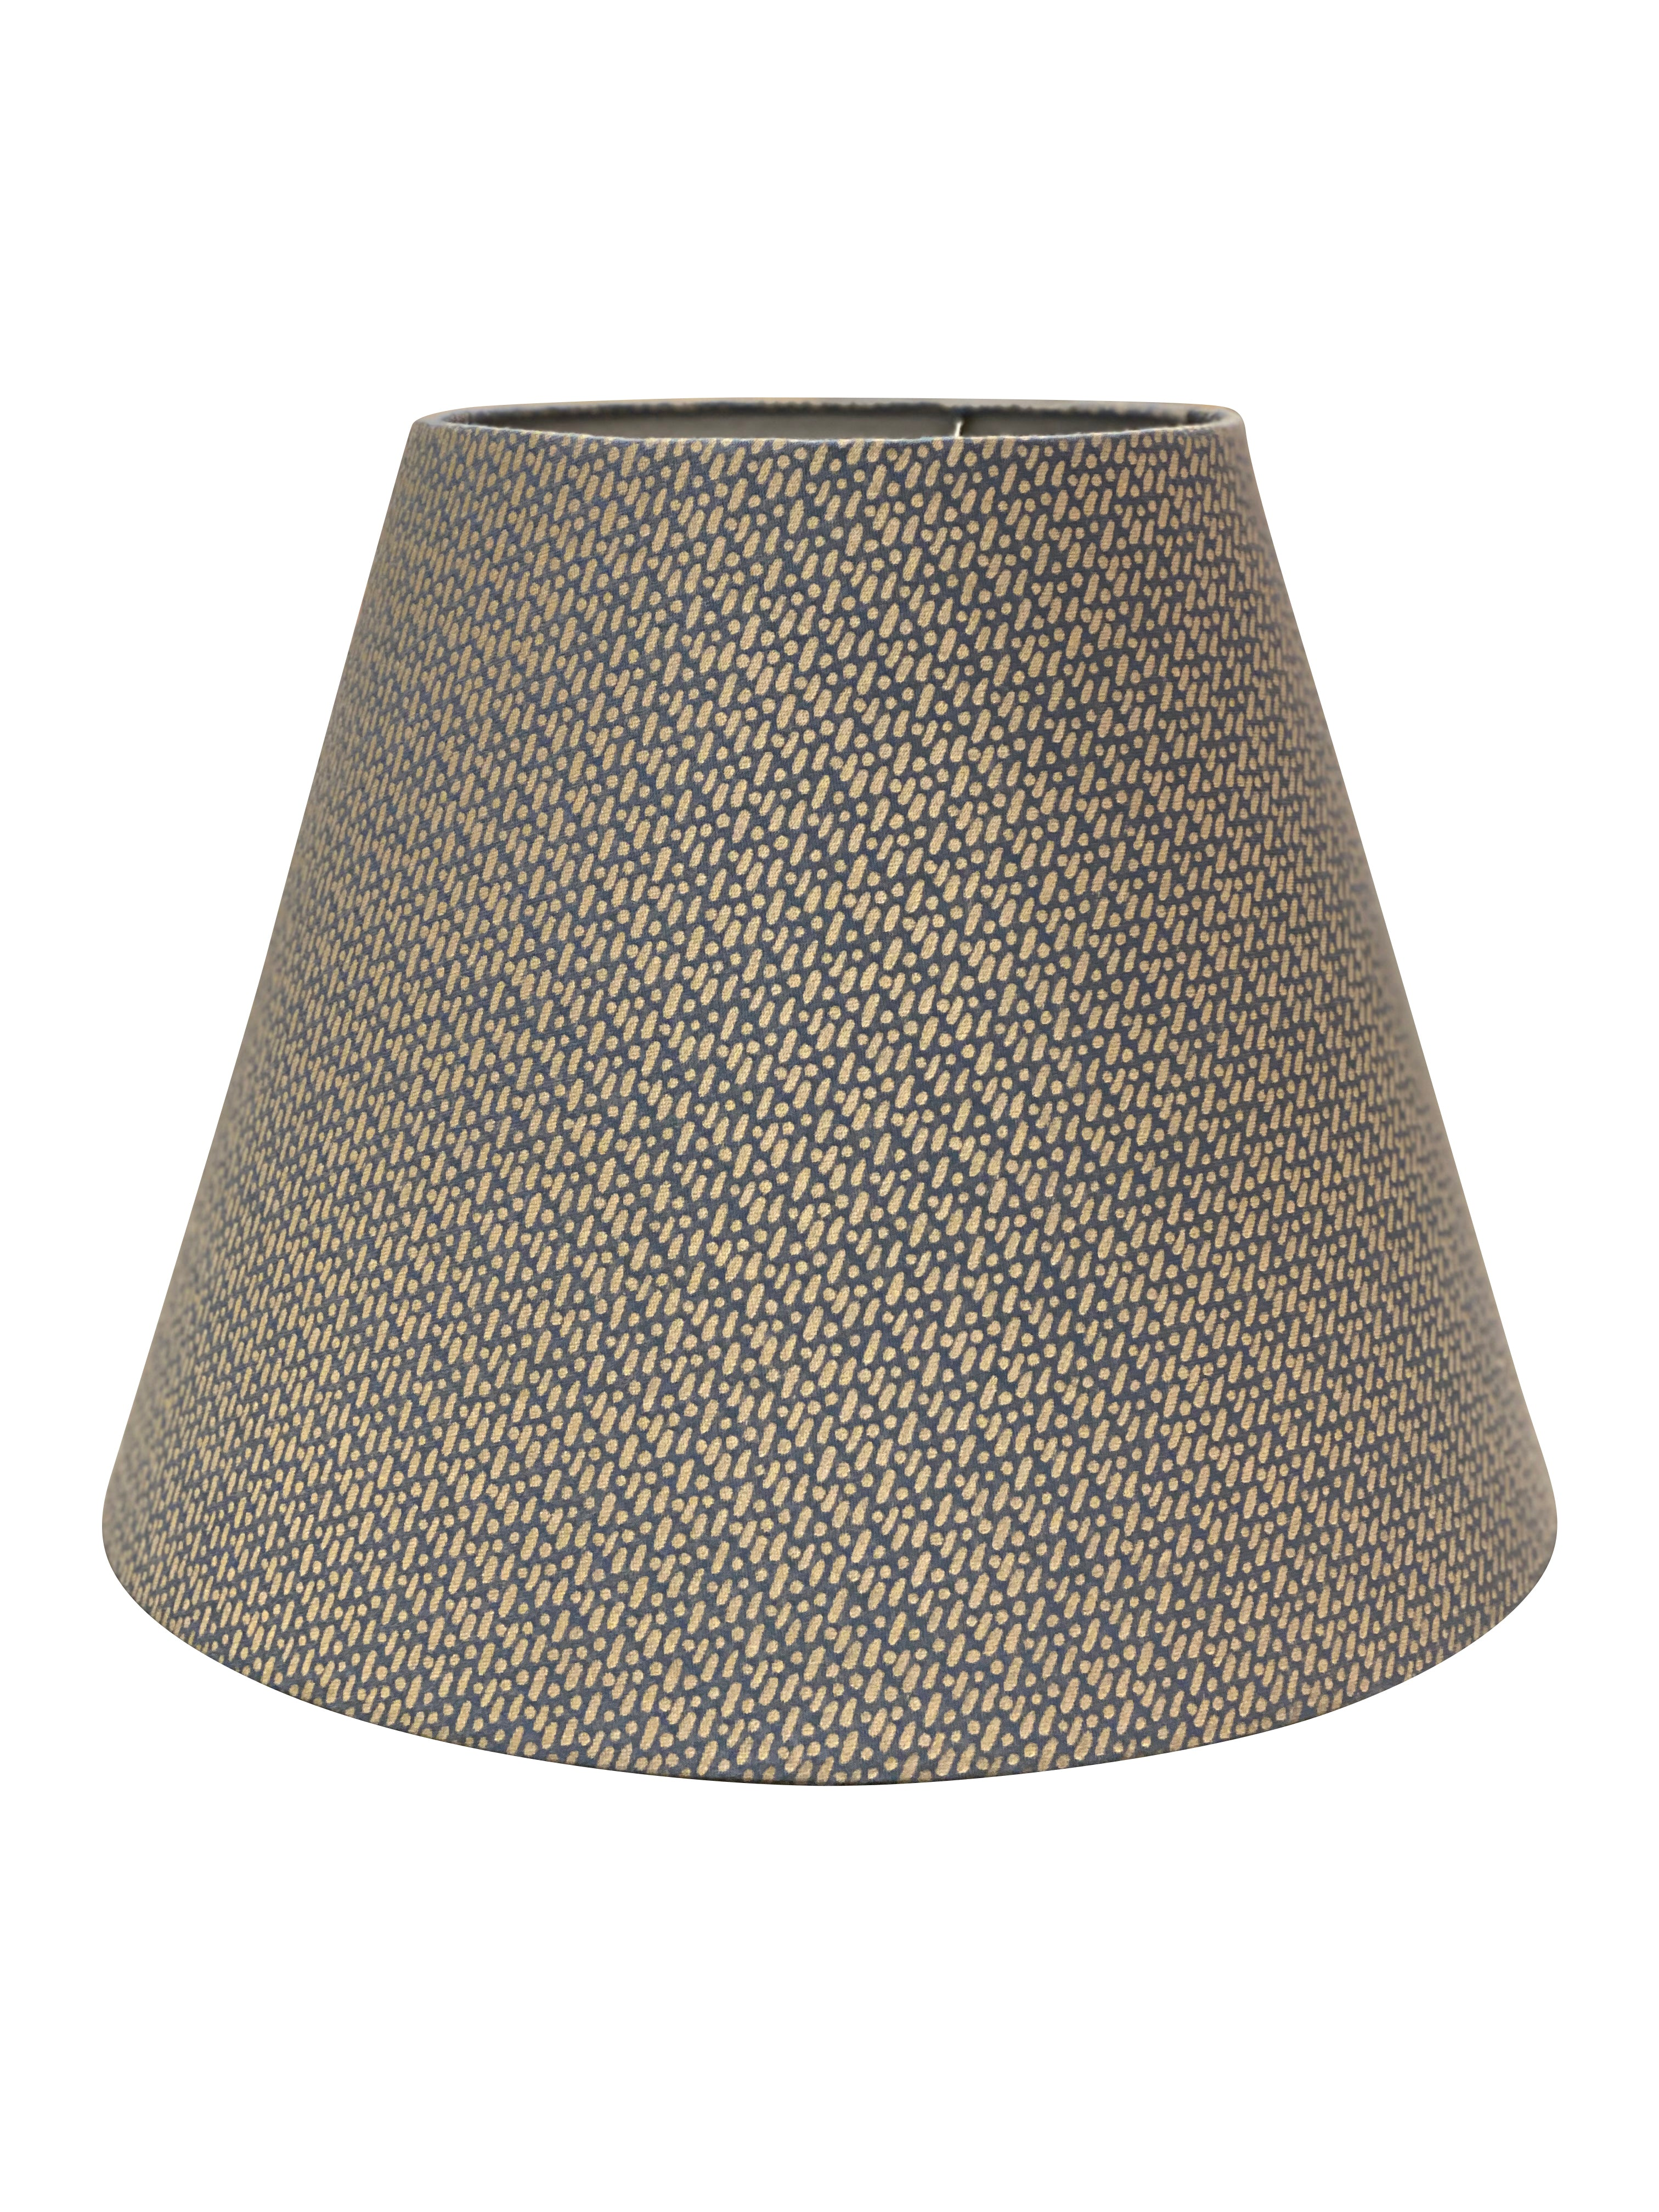 Fortuny Micro-Campanelle Lampshade